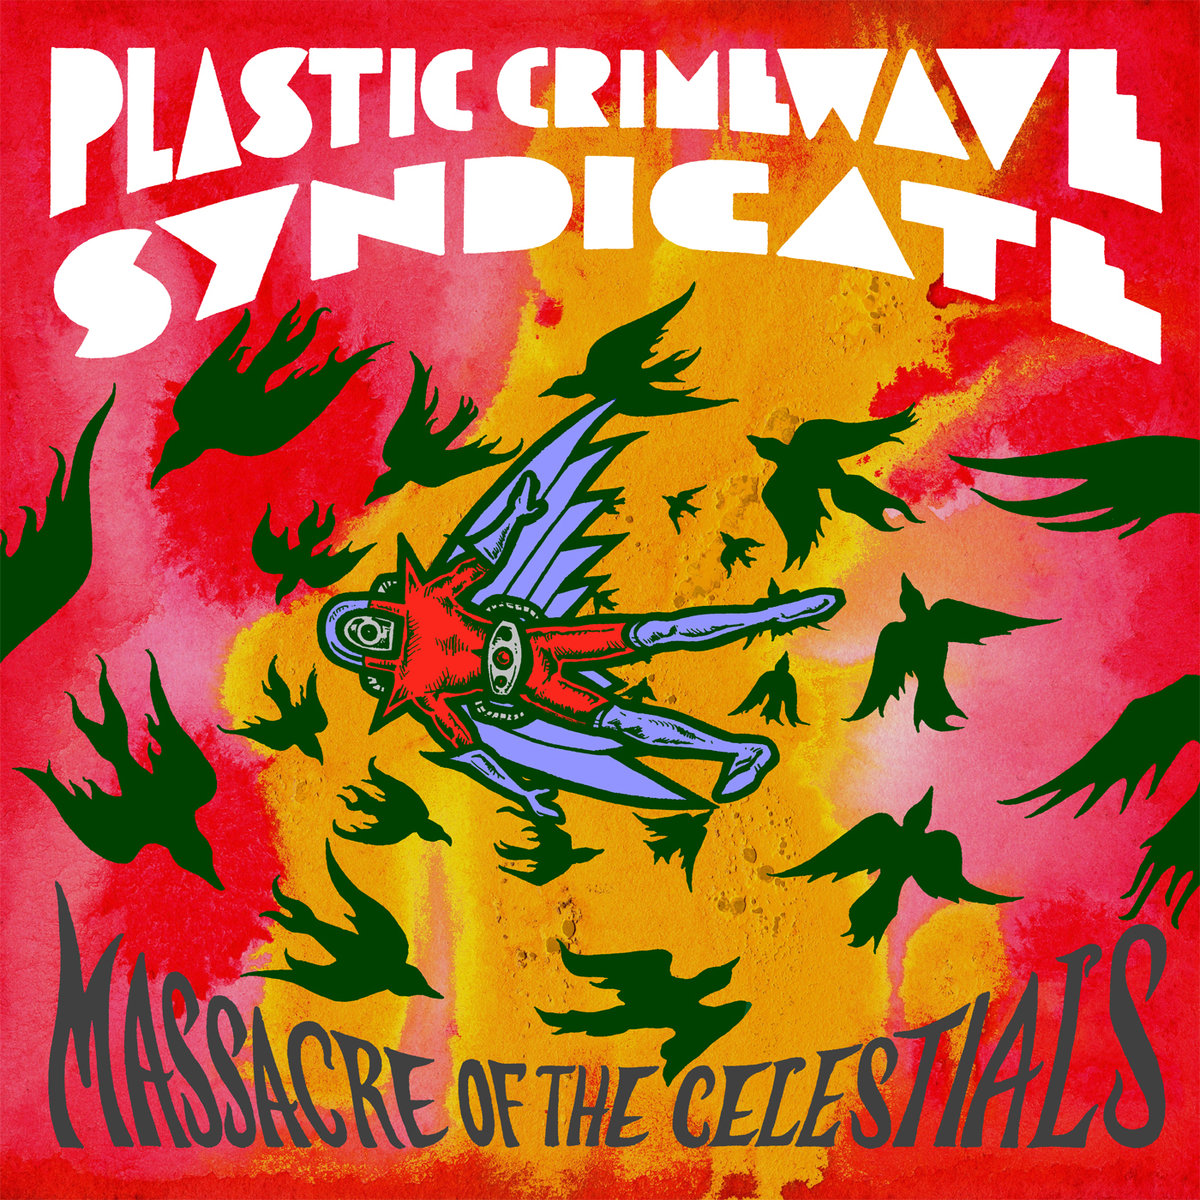 "Plastic Crimewave Sound ""Massacre of the Celestials"" LP"